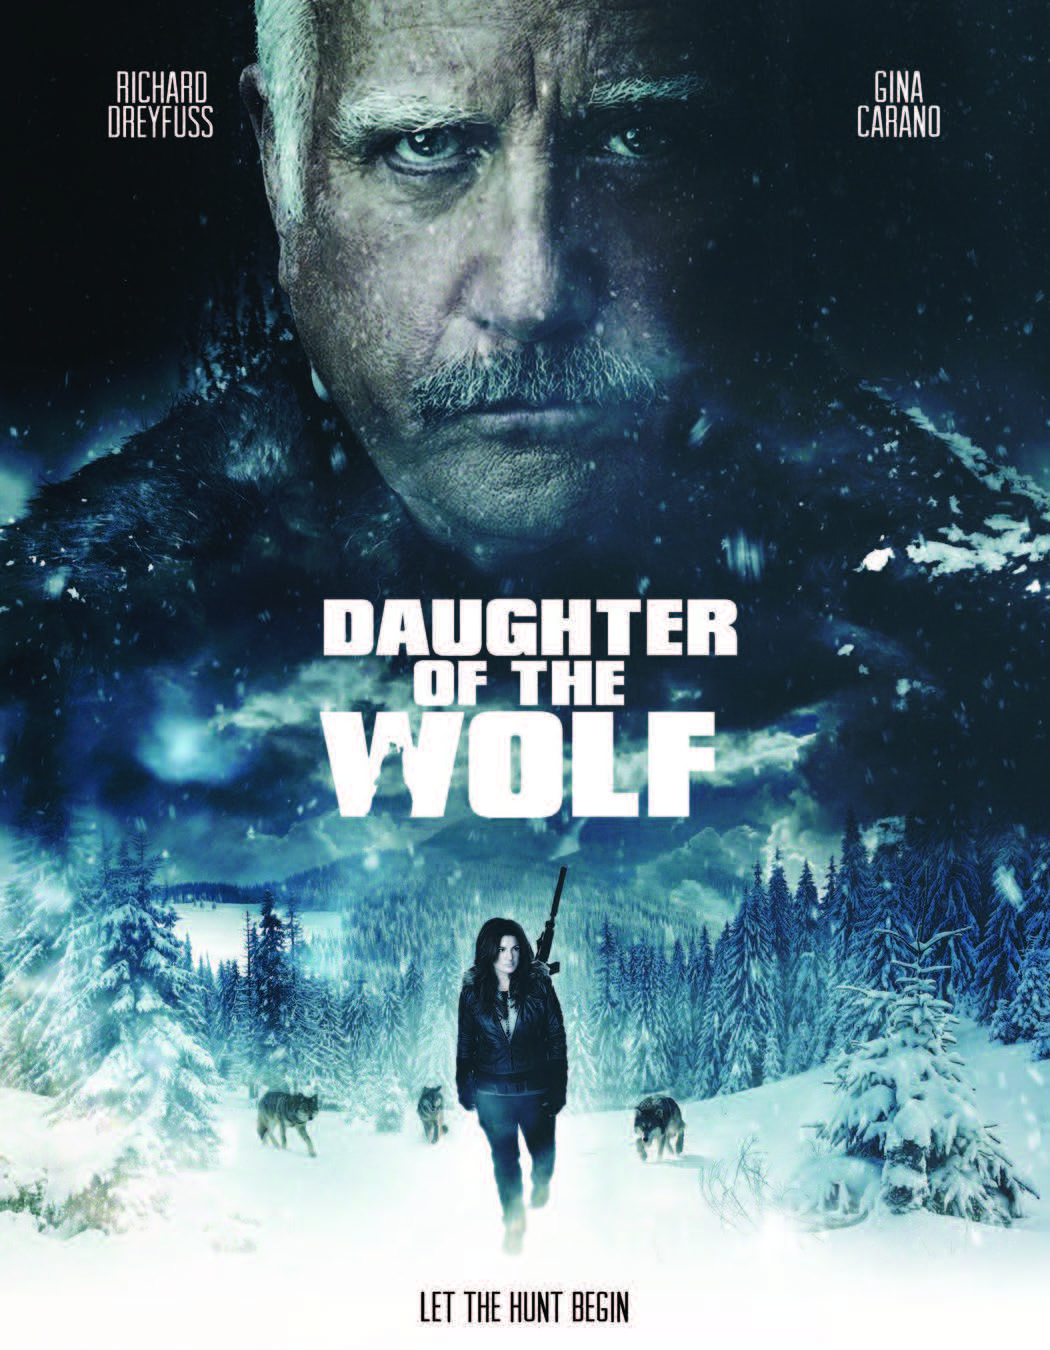 Daughter-of-the-Wolf-movie-poster.jpg?ss